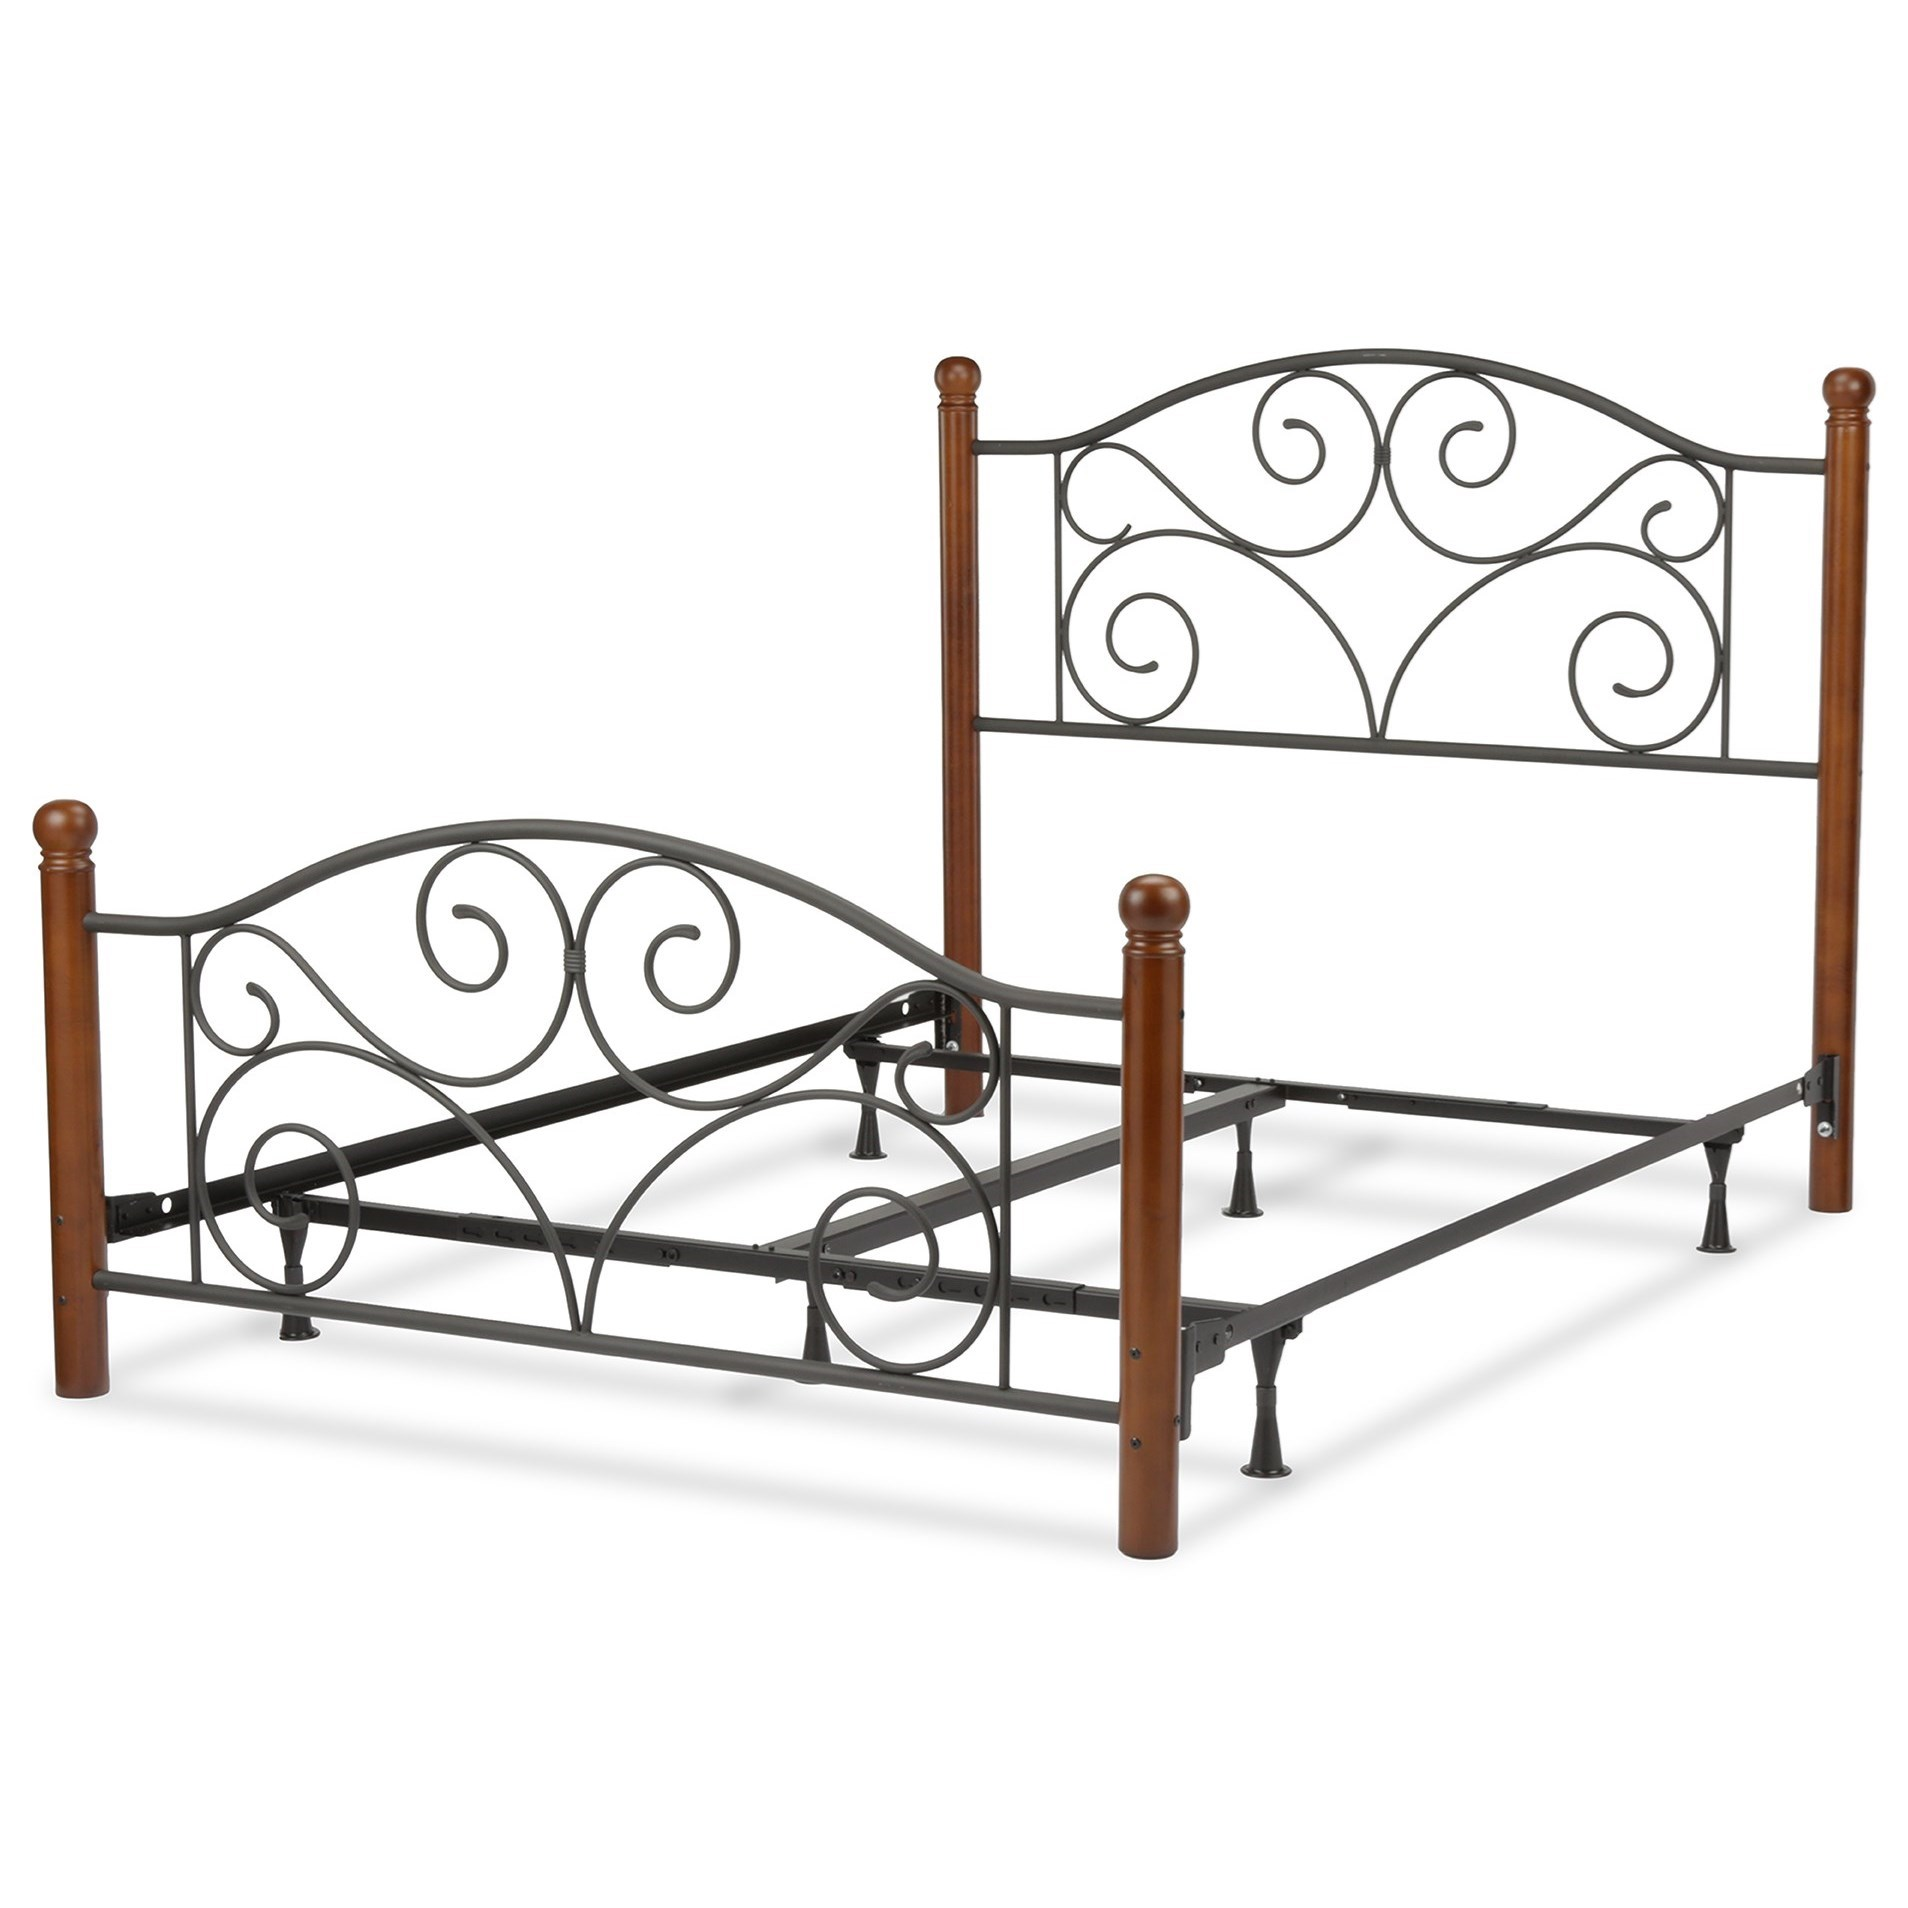 735279149 also Henley Black Metal Bed Frame Hospital Dorm Single Double King Size in addition Wooden Replacement Bedrails furthermore Sofa Bed Couches as well Bunk Bed Dimensions. on mattress for sofa beds